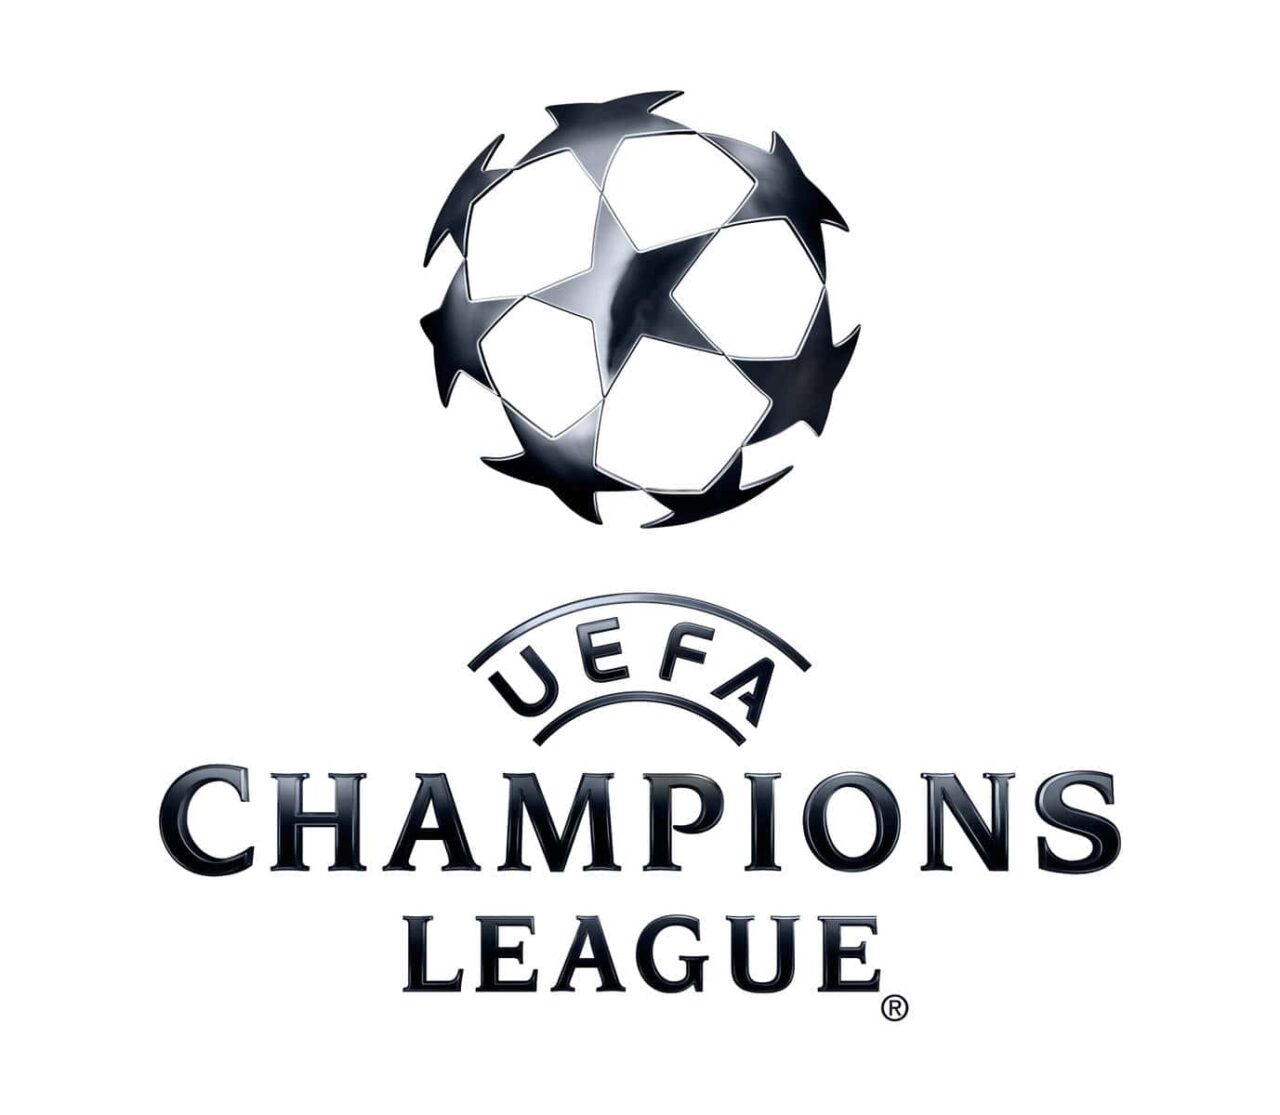 Champions League Tips Zrinjski - Spartak Trnava